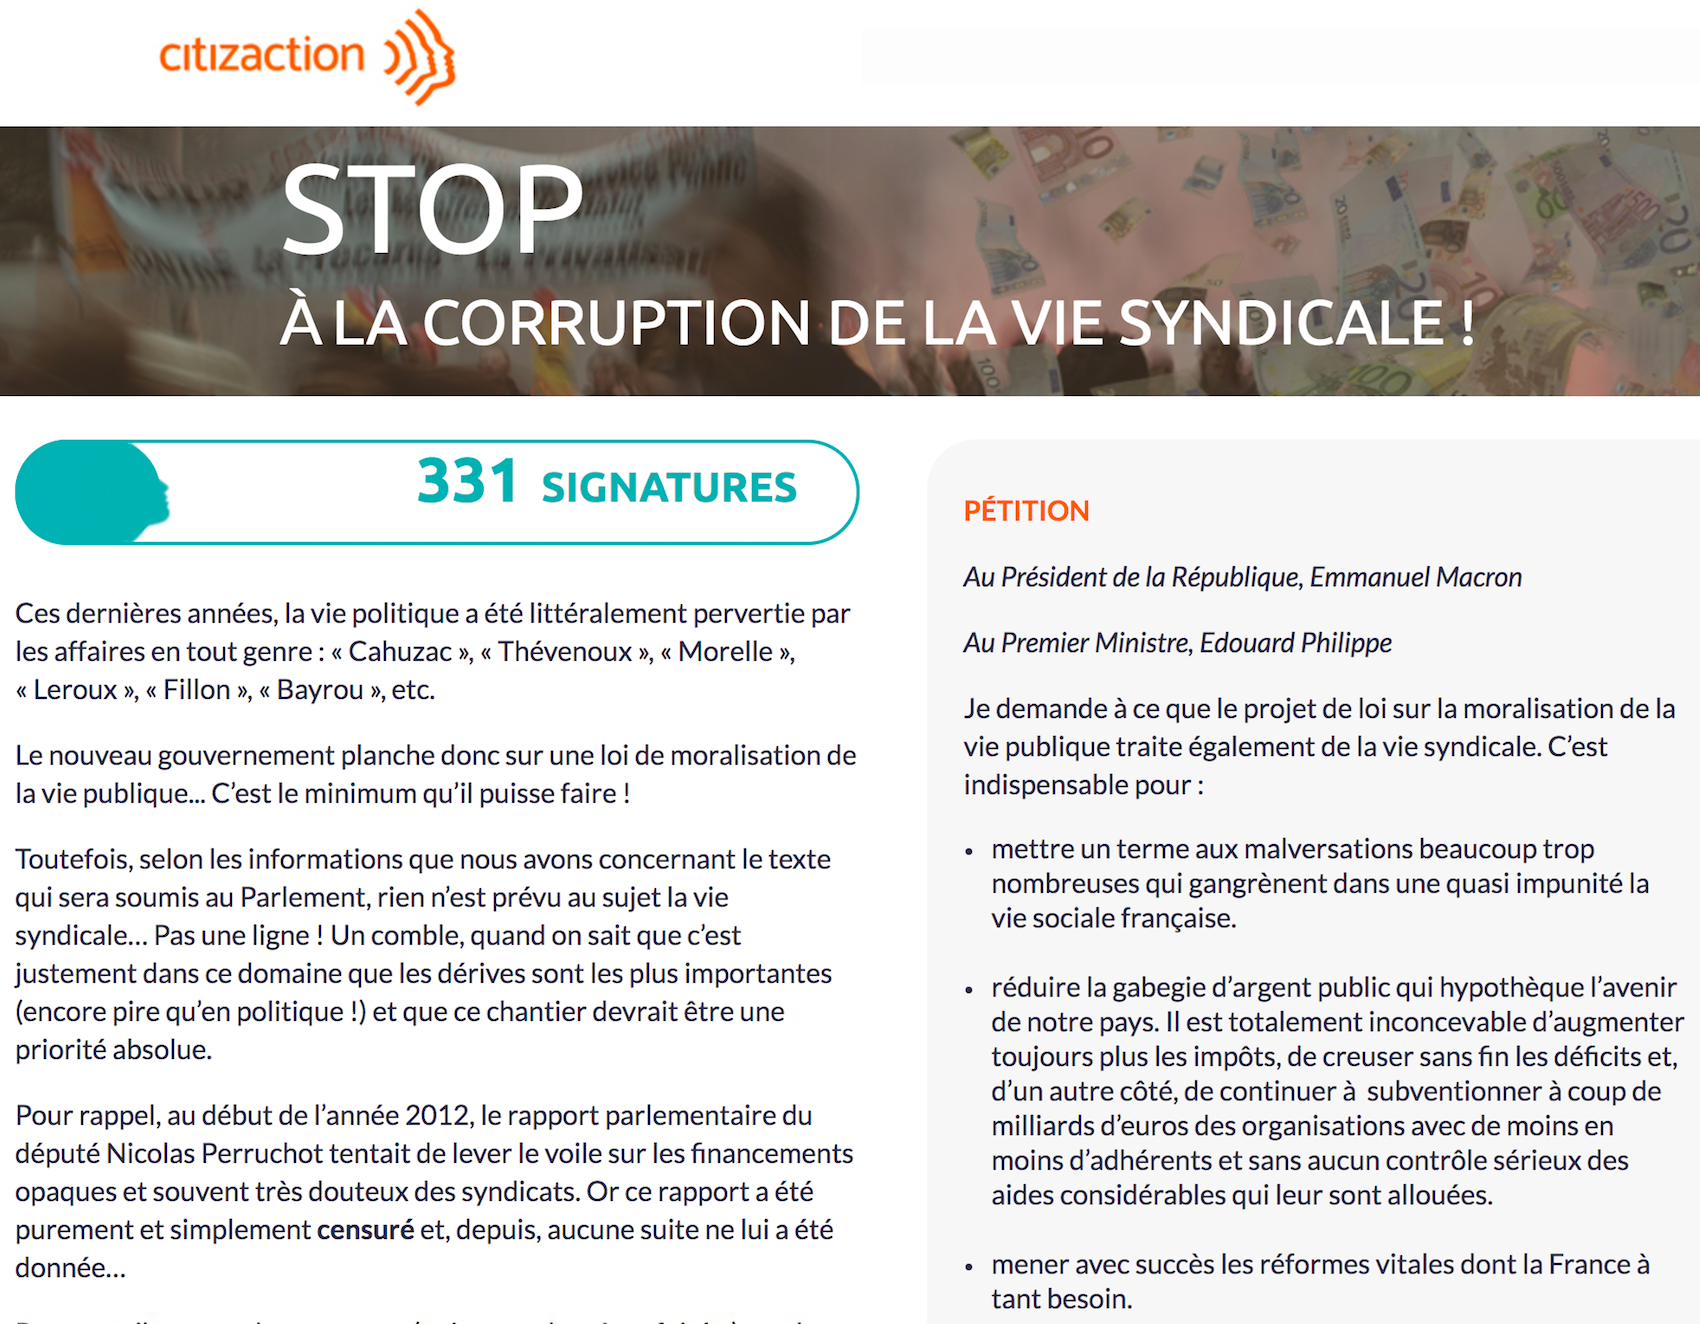 citizaction-petition-corruption-syndicats